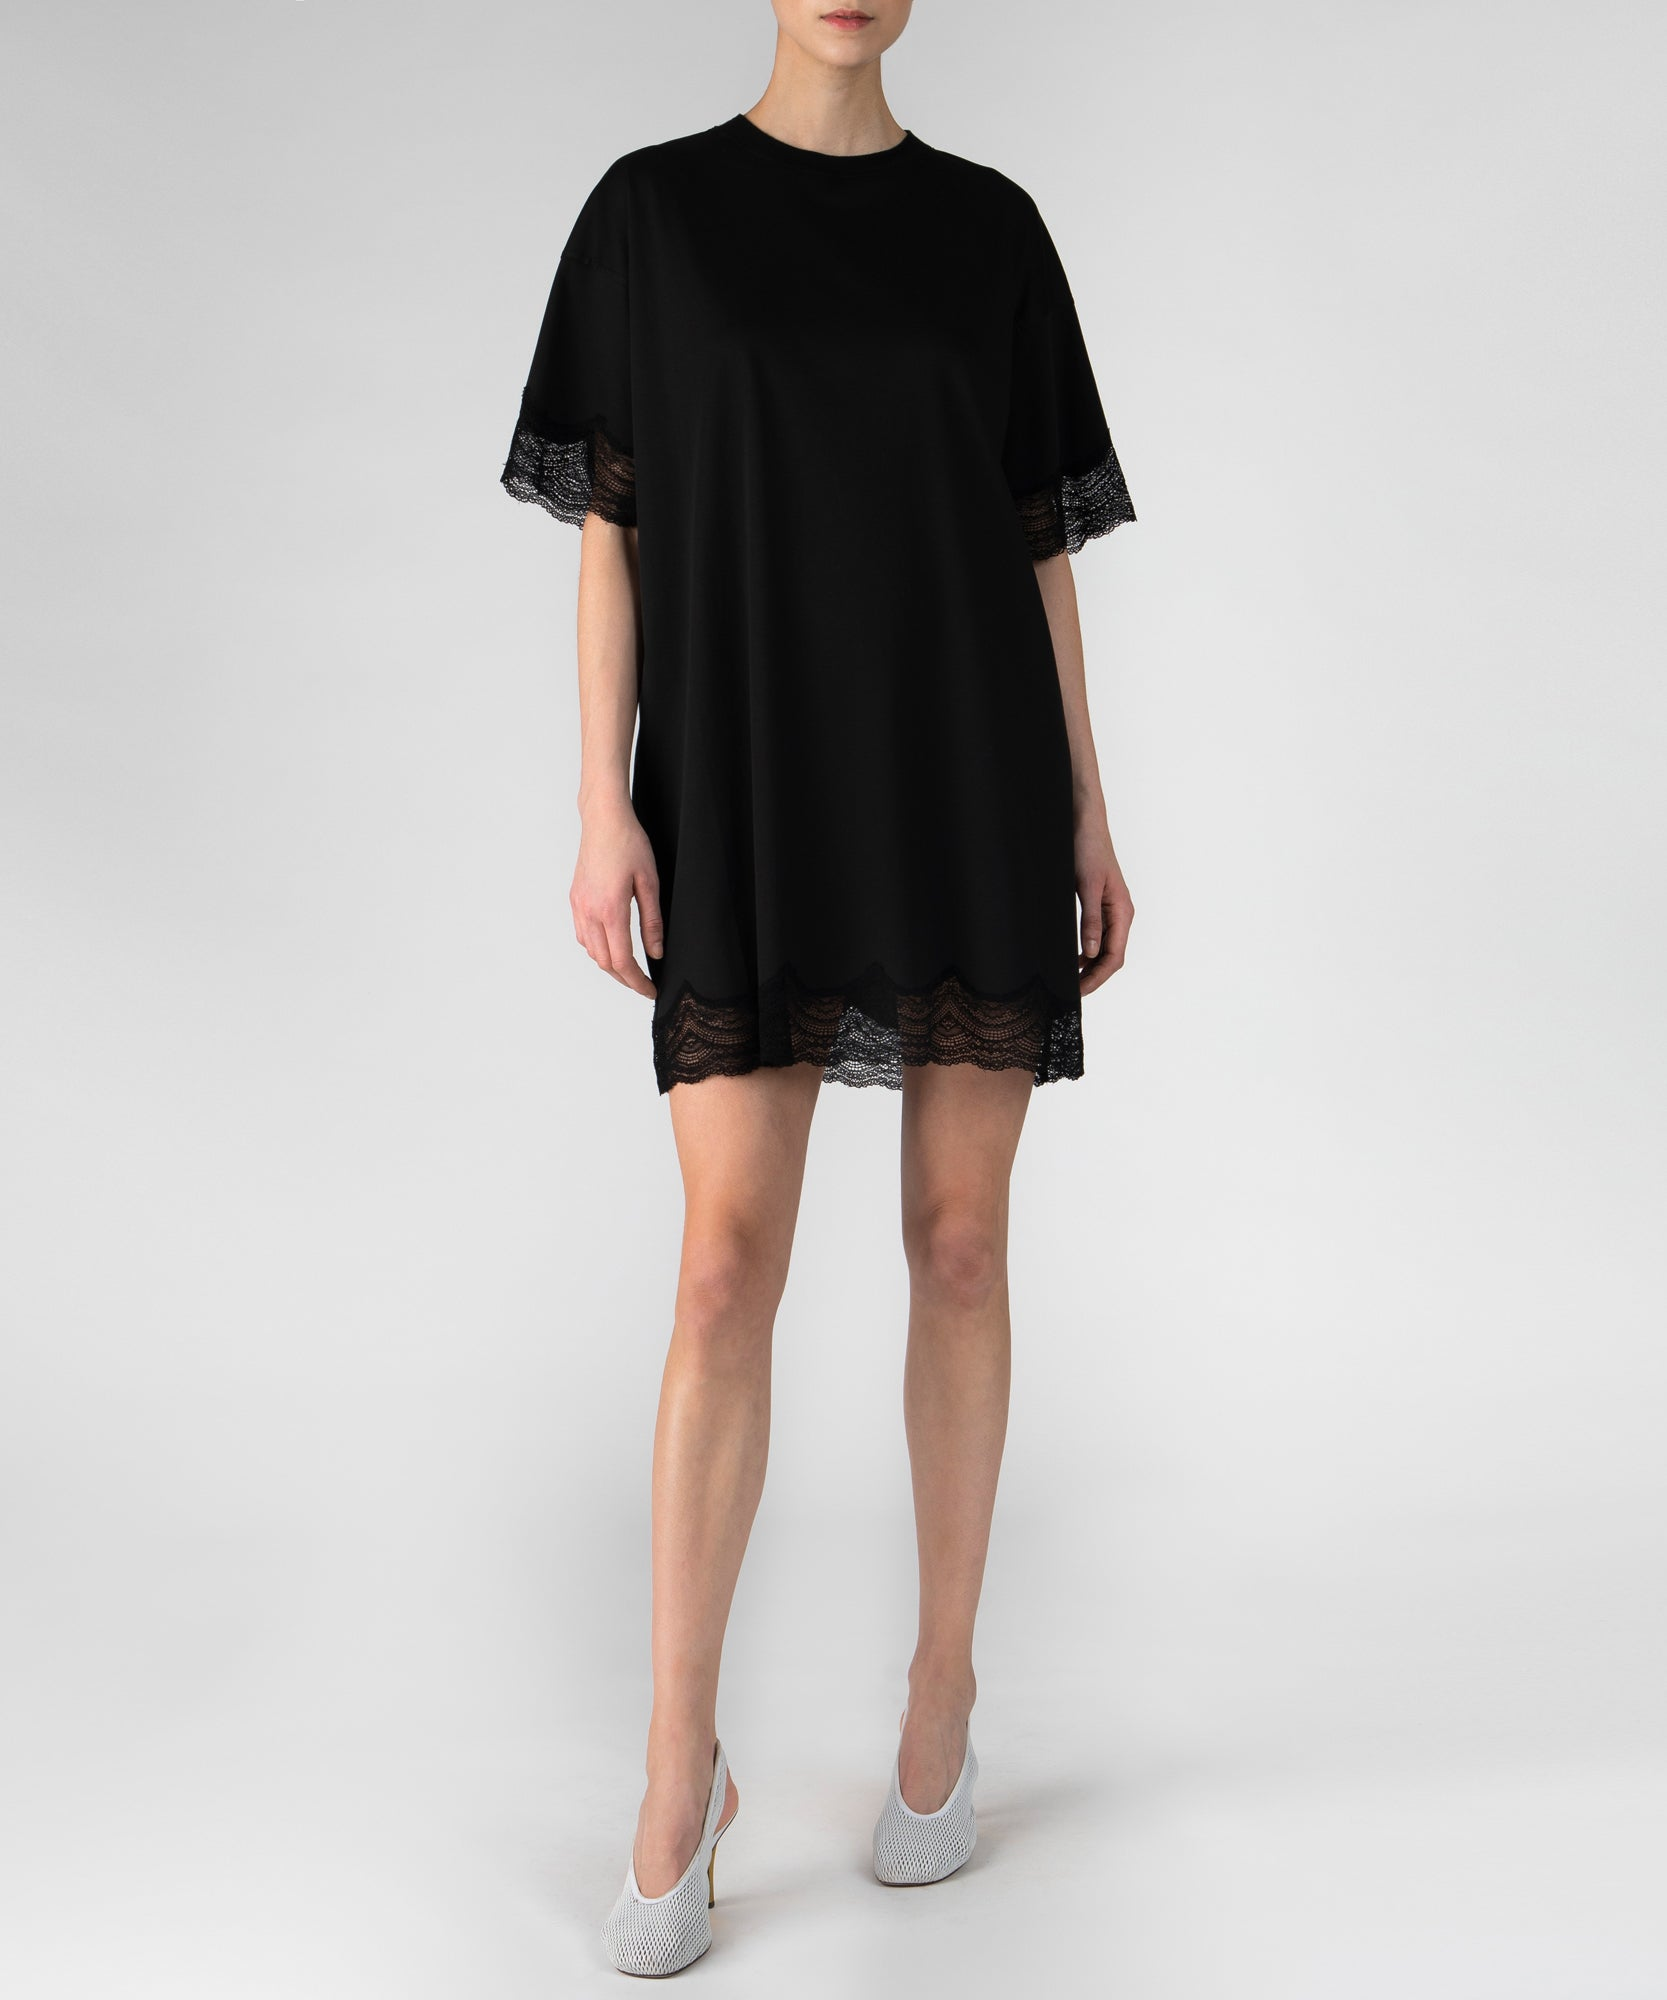 Black Lace Detail Mini Dress - Women's Casual Dress by ATM Anthony Thomas Melillo